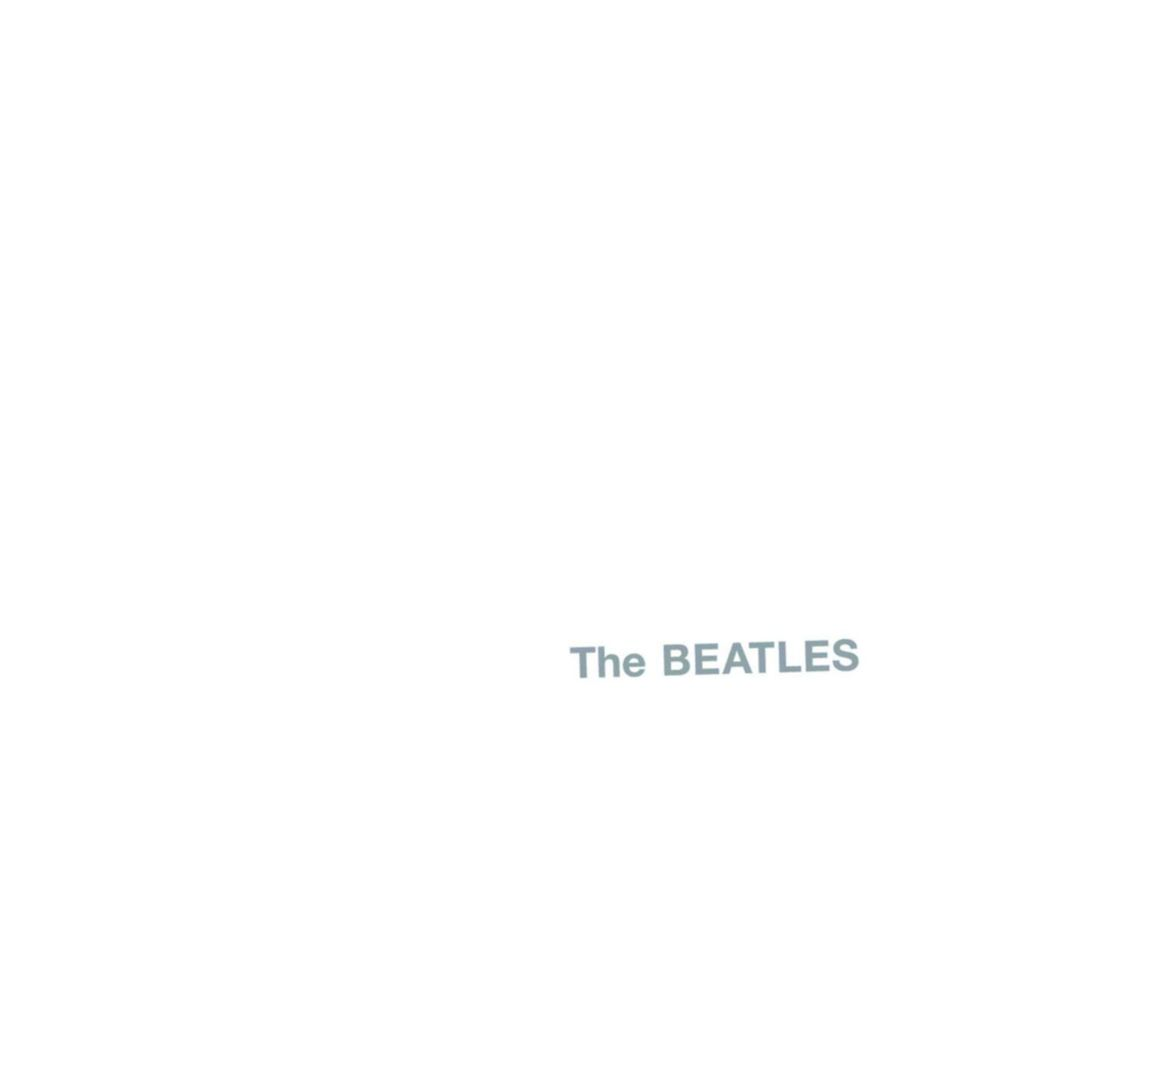 The Beatles - THE BEATLES (1968)